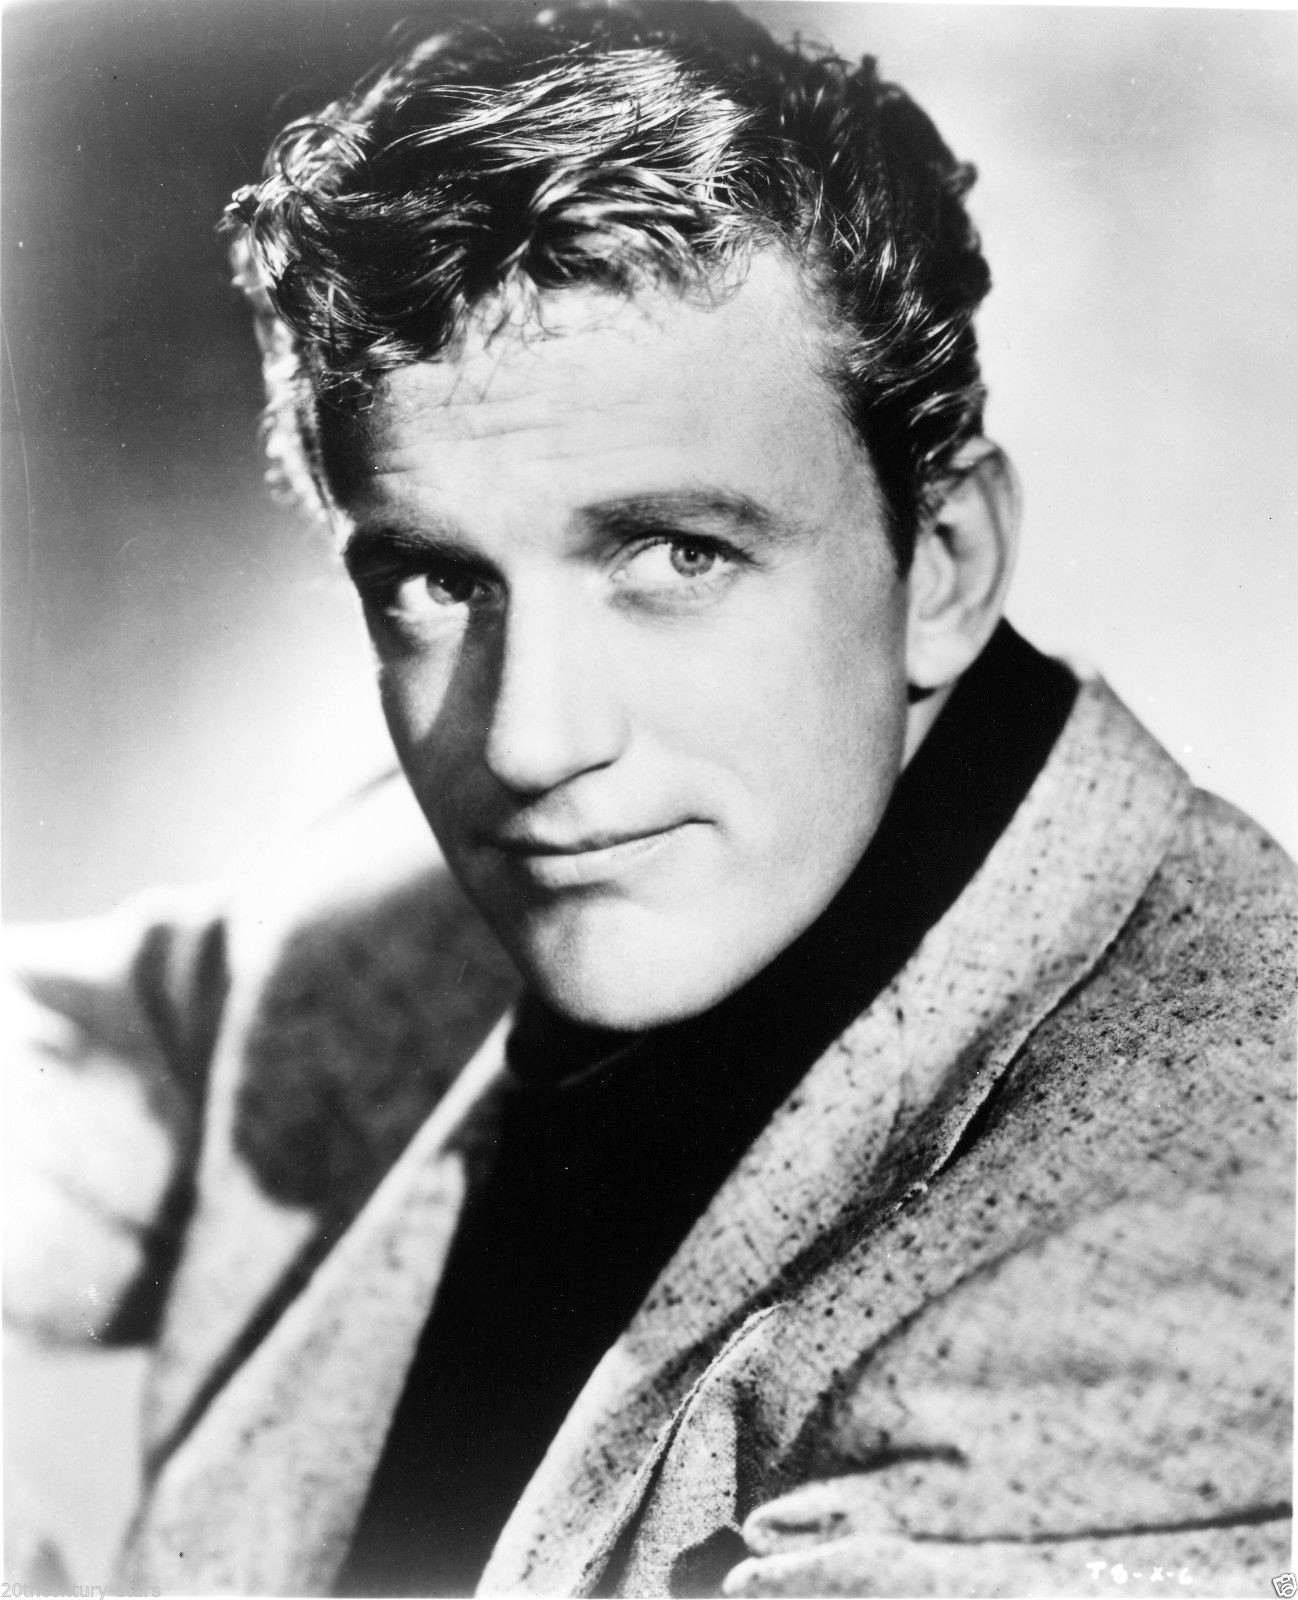 james arness moviesjames arness height, james arness net worth, james arness movies, james arness wife, james arness children, james arness and peter graves, james arness age, james arness grave, james arness brother, james arness death, james arness the thing, james arness daughter, james arness imdb, james arness siblings, james arness height and weight, james arness horse, james arness house, james arness and john wayne, james arness birthday, james arness family photos